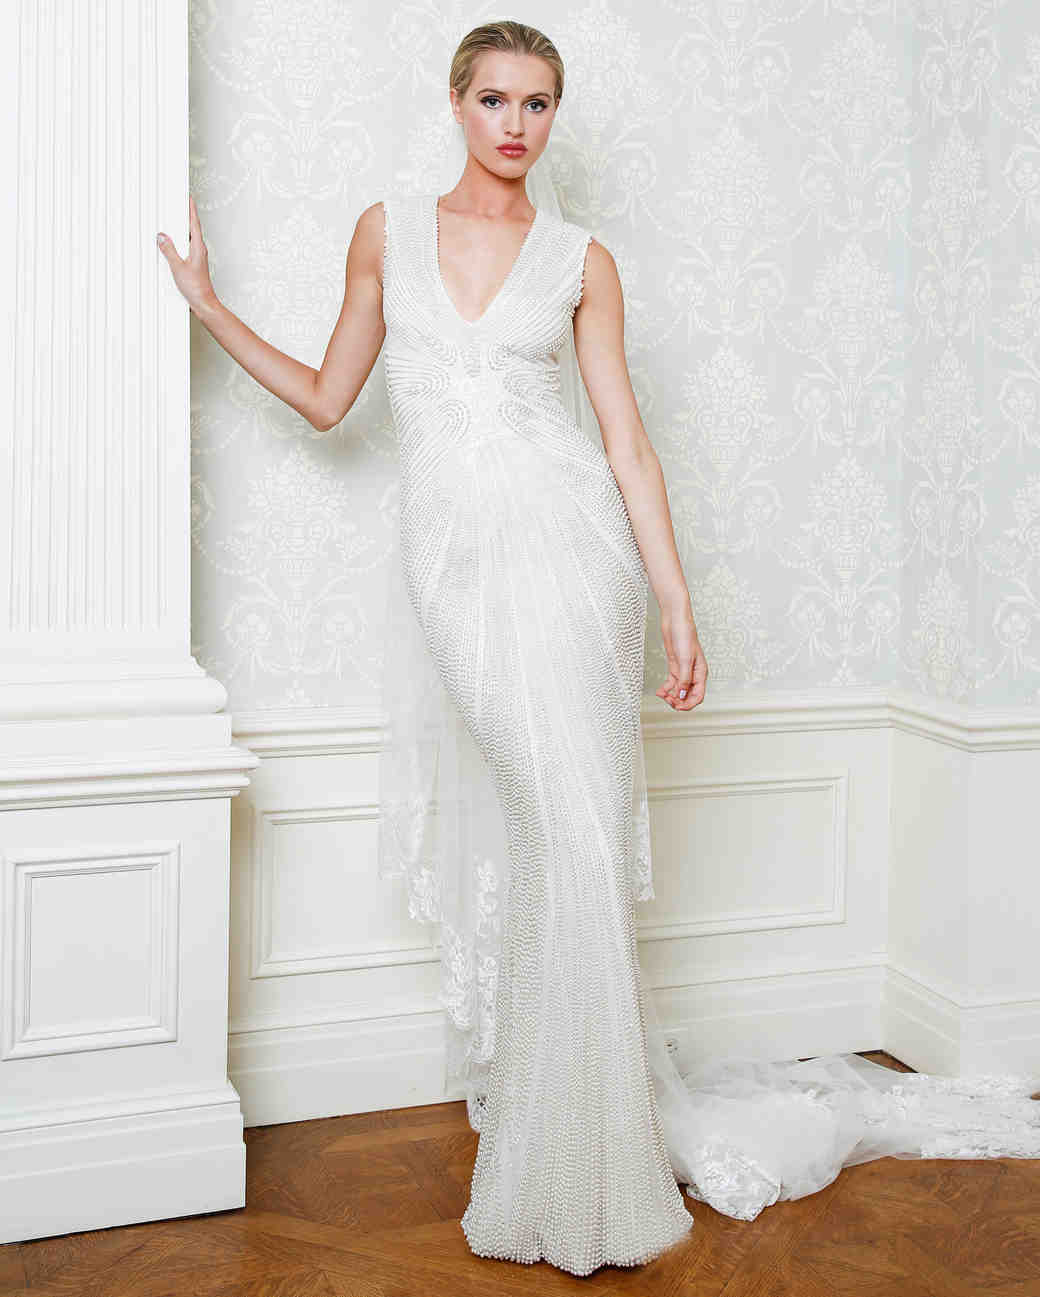 Cristina Ottaviano wedding dress spring 2019 beaded sheath v-neck gown